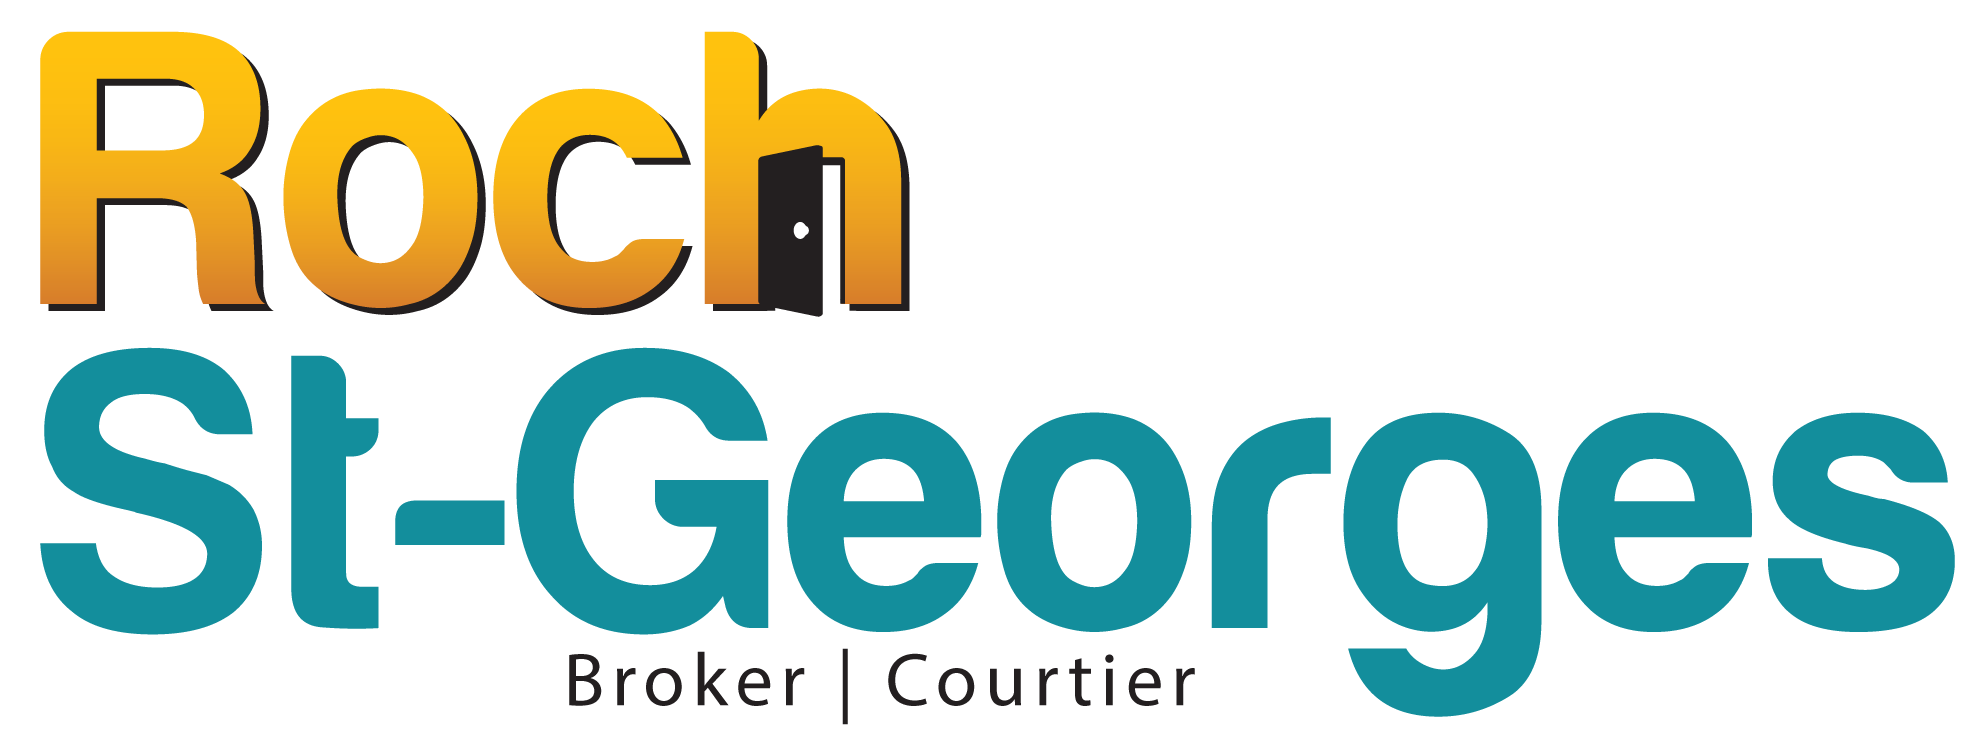 roch st-georges - exit realty